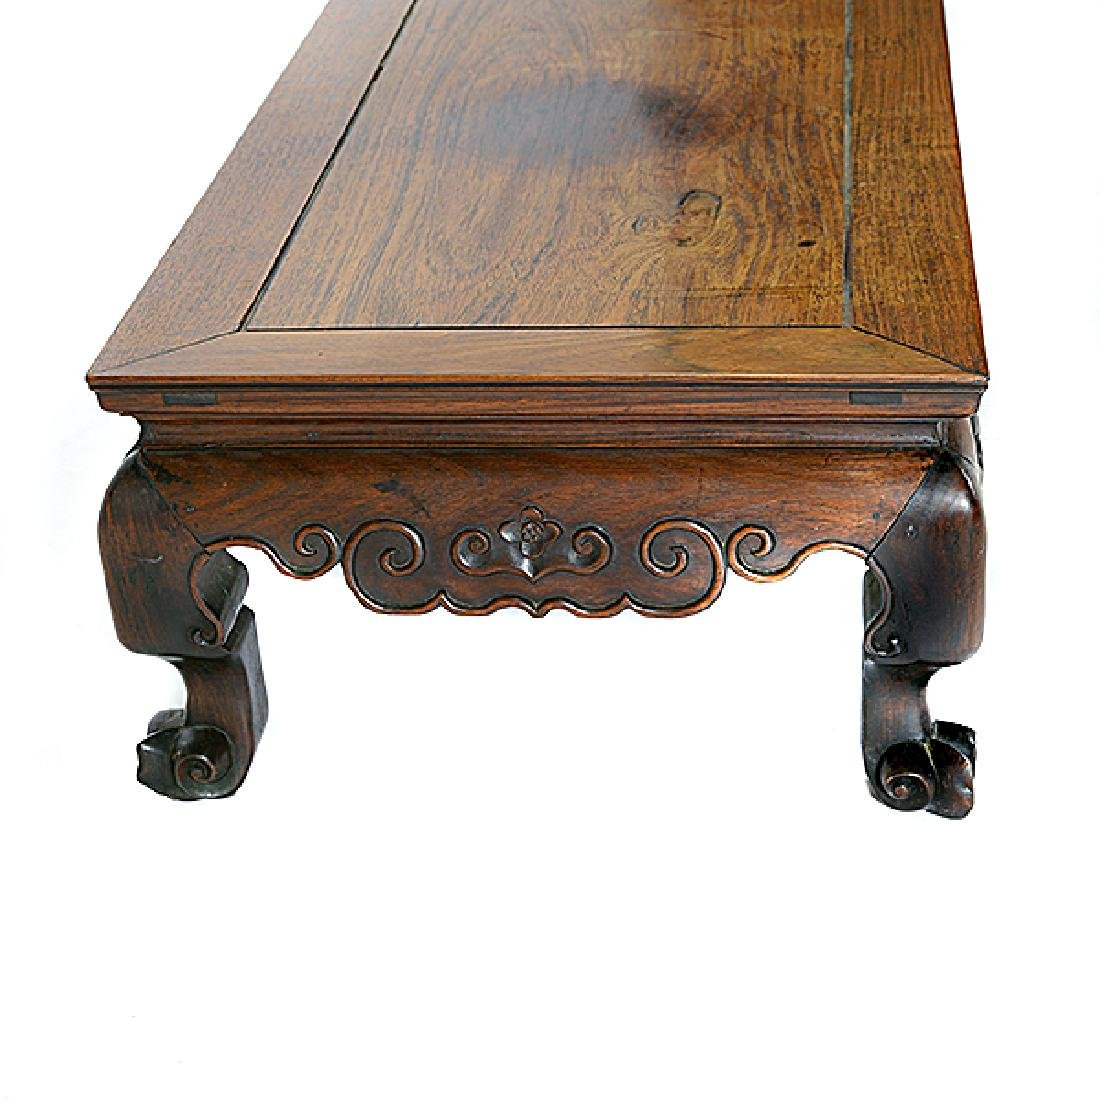 A Rosewood Kang Table, Late 19th/Early 20th Century - 2